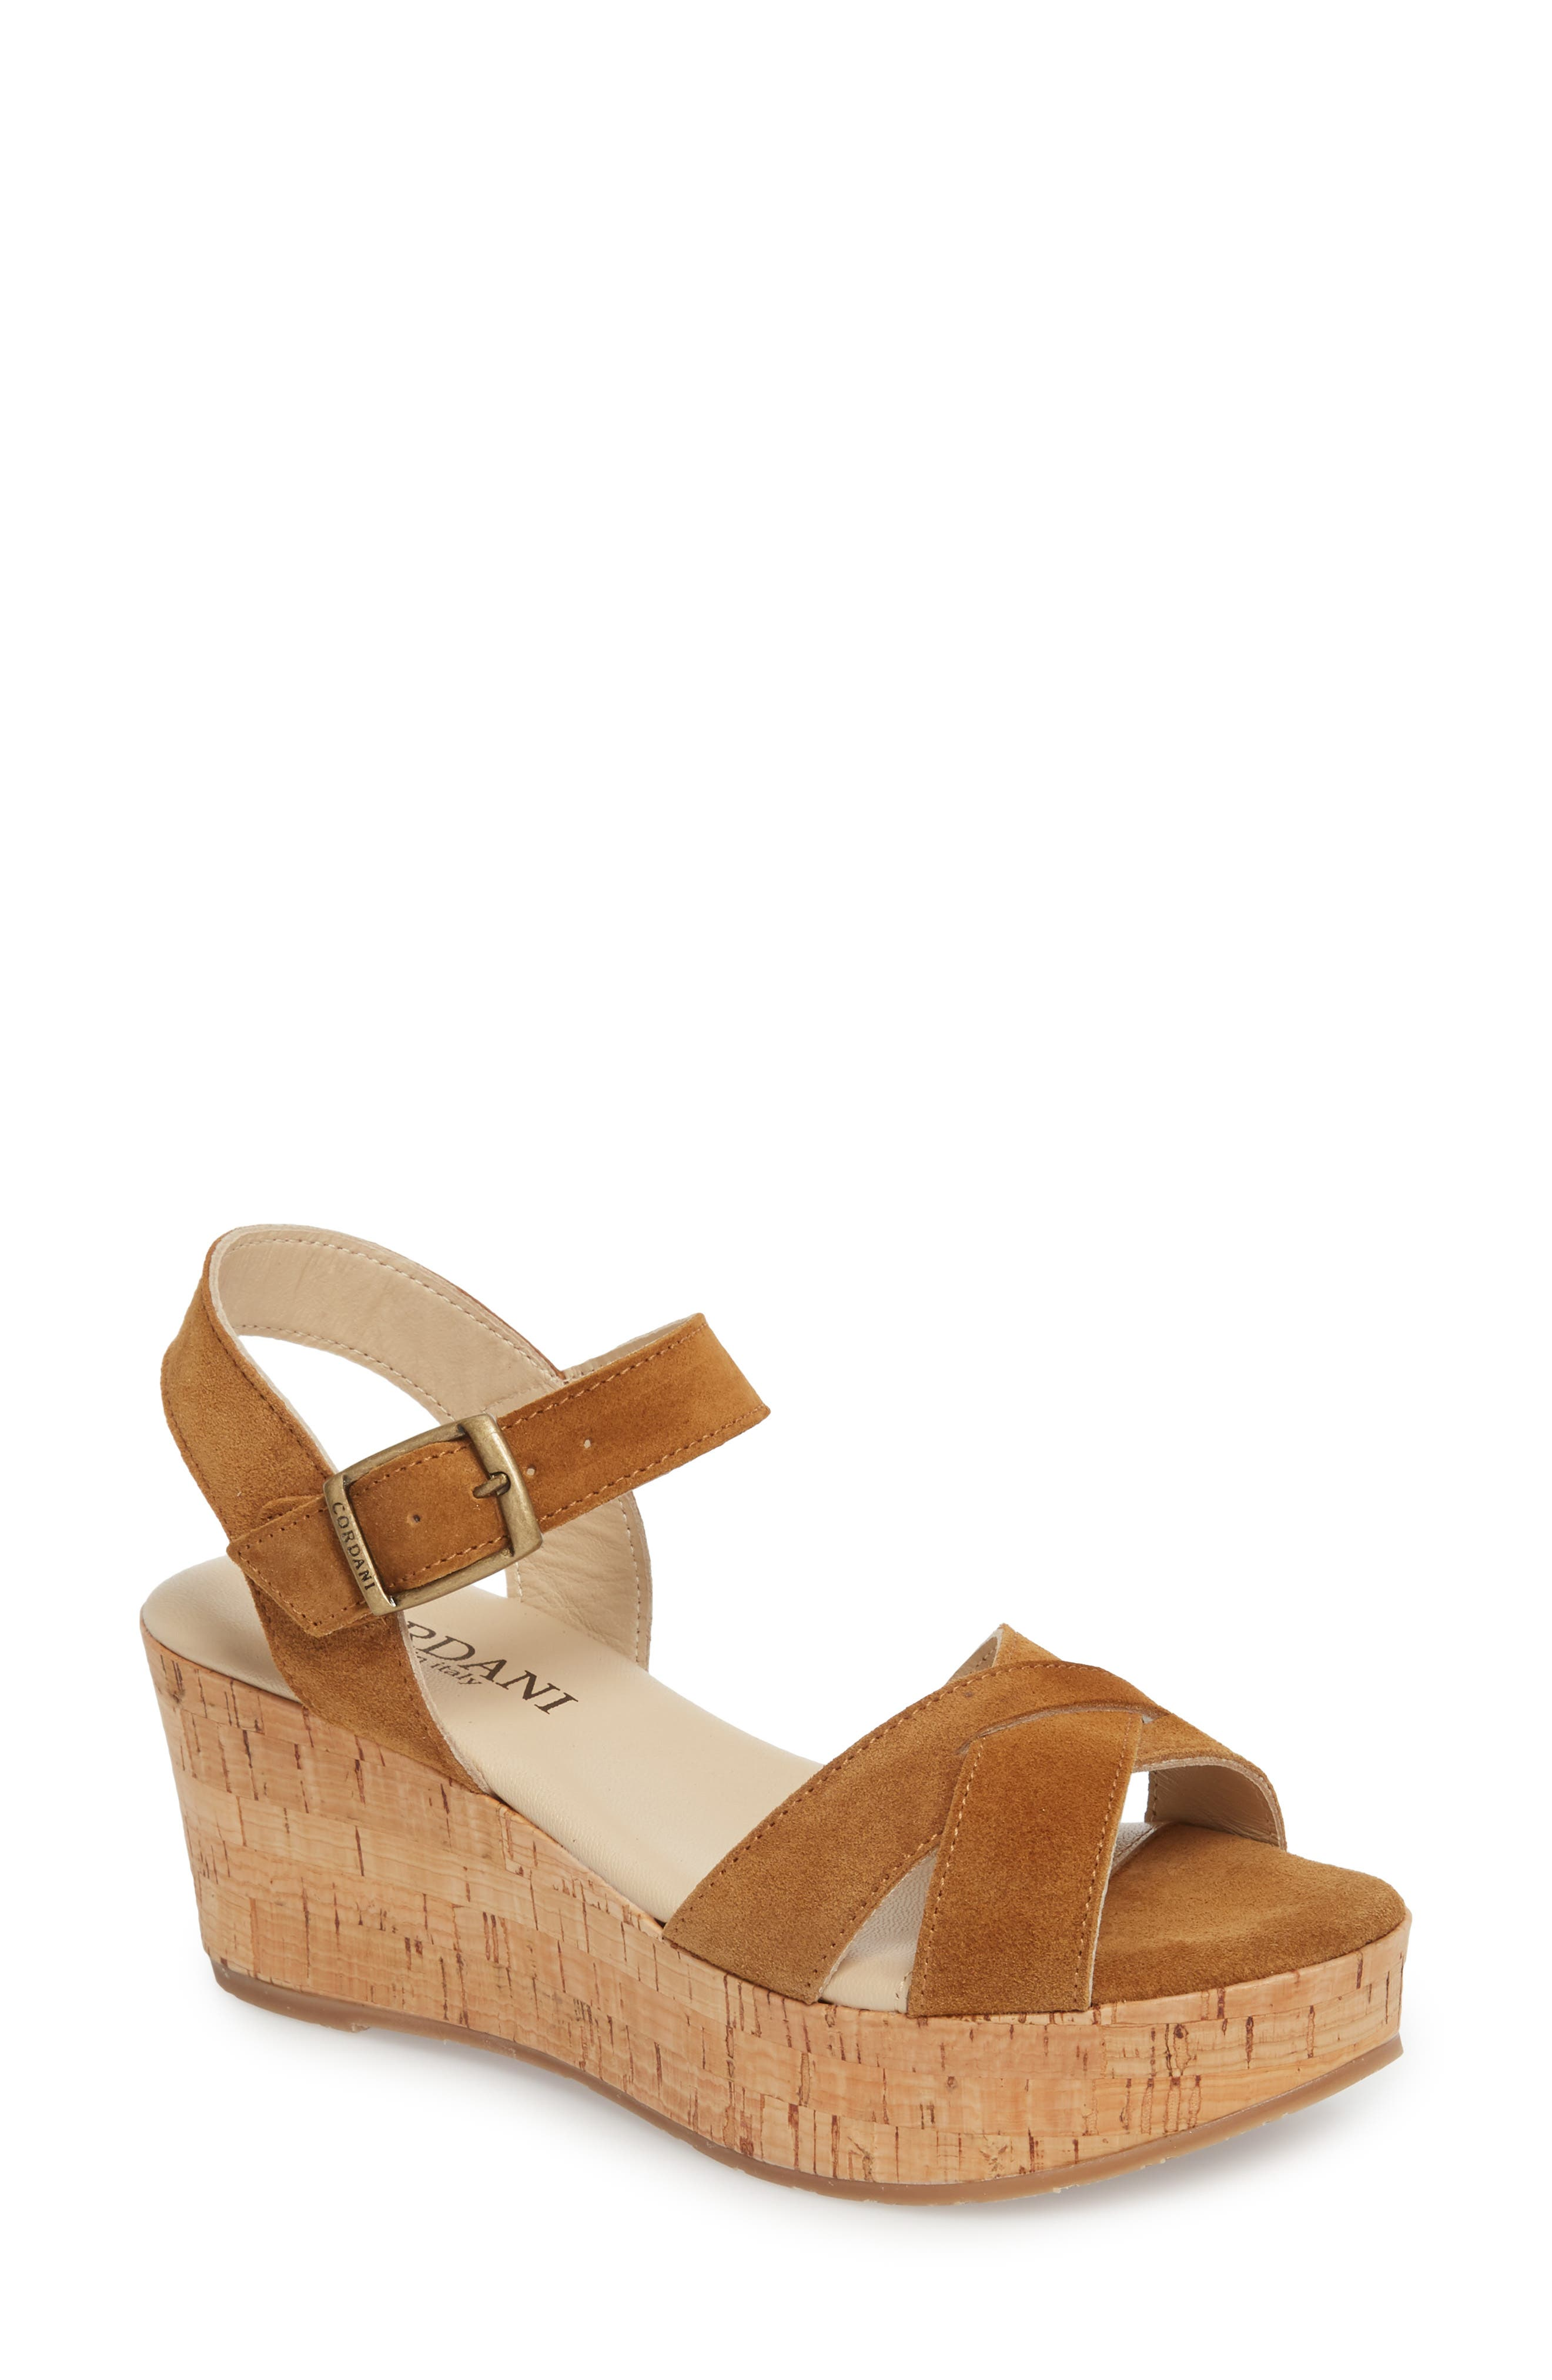 Candy Wedge Sandal,                             Main thumbnail 1, color,                             Cola Suede